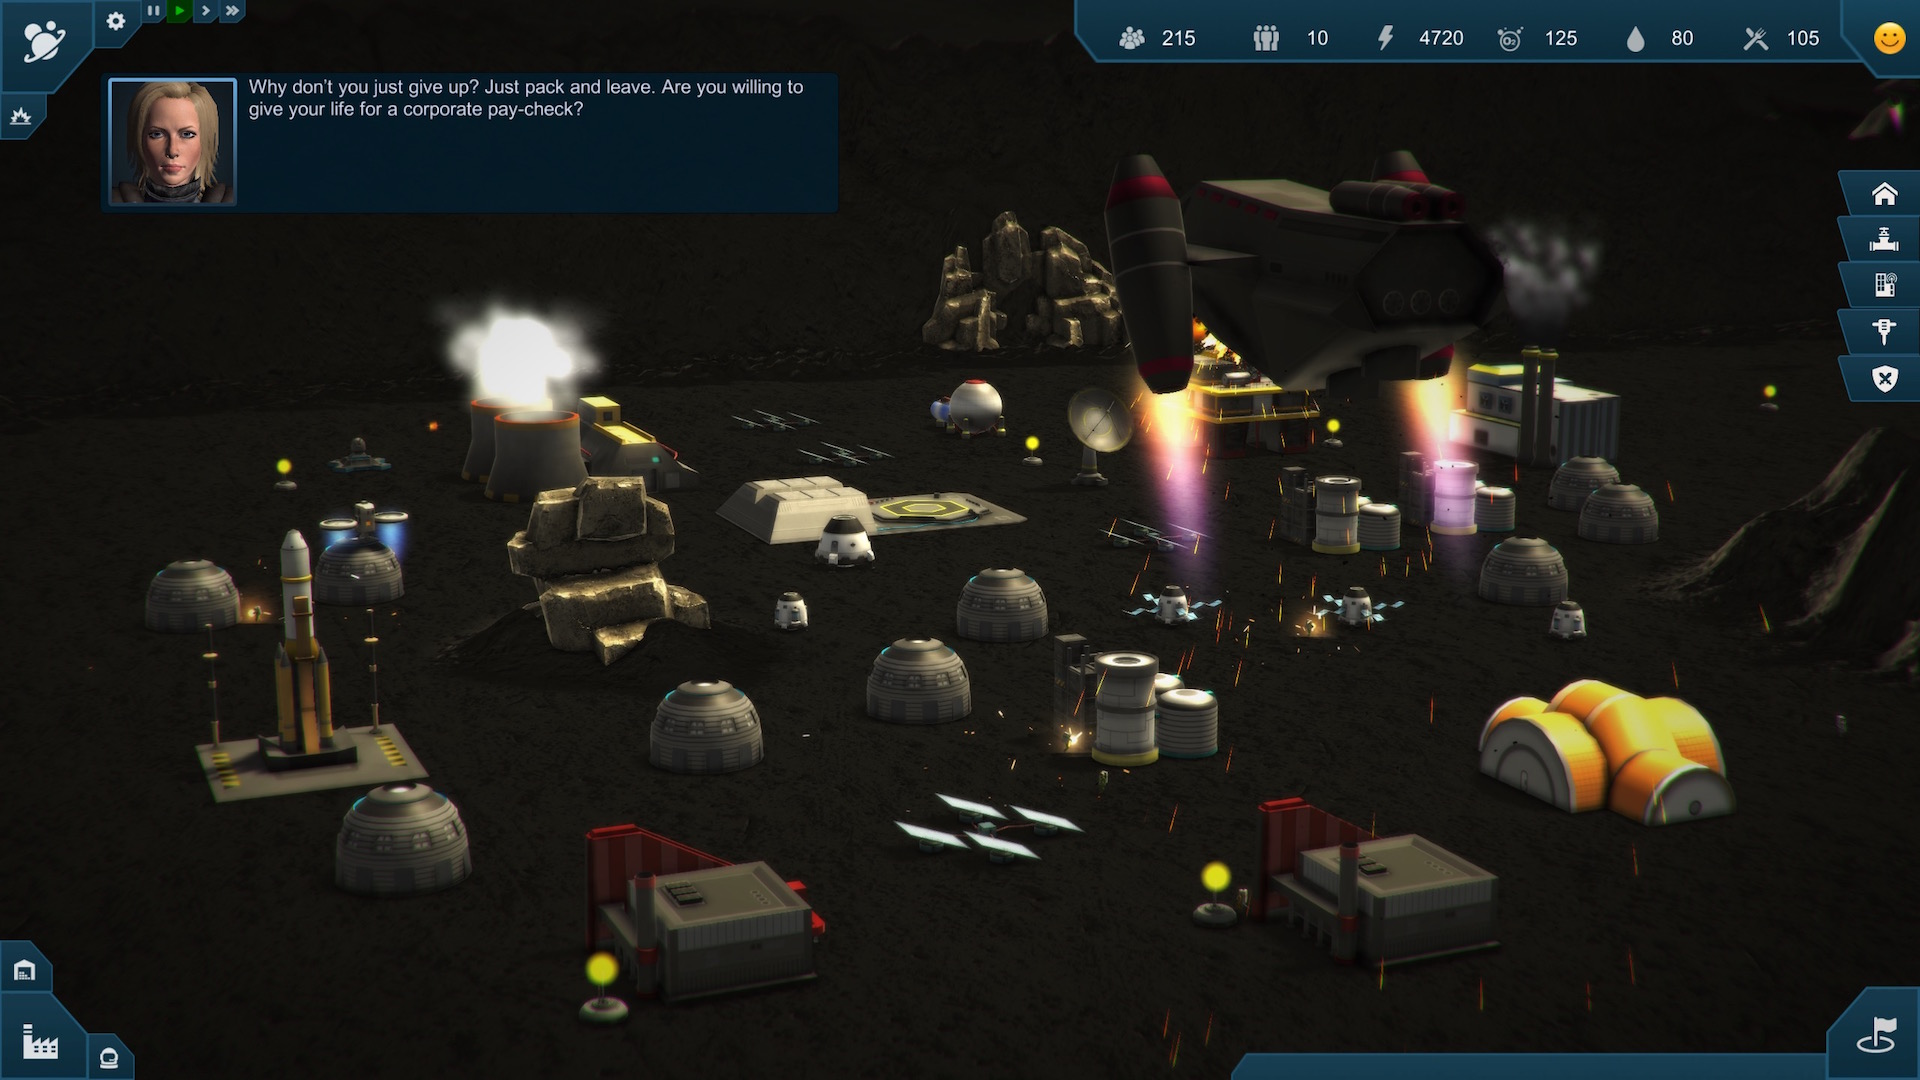 What's On Steam - Earth Space Colonies